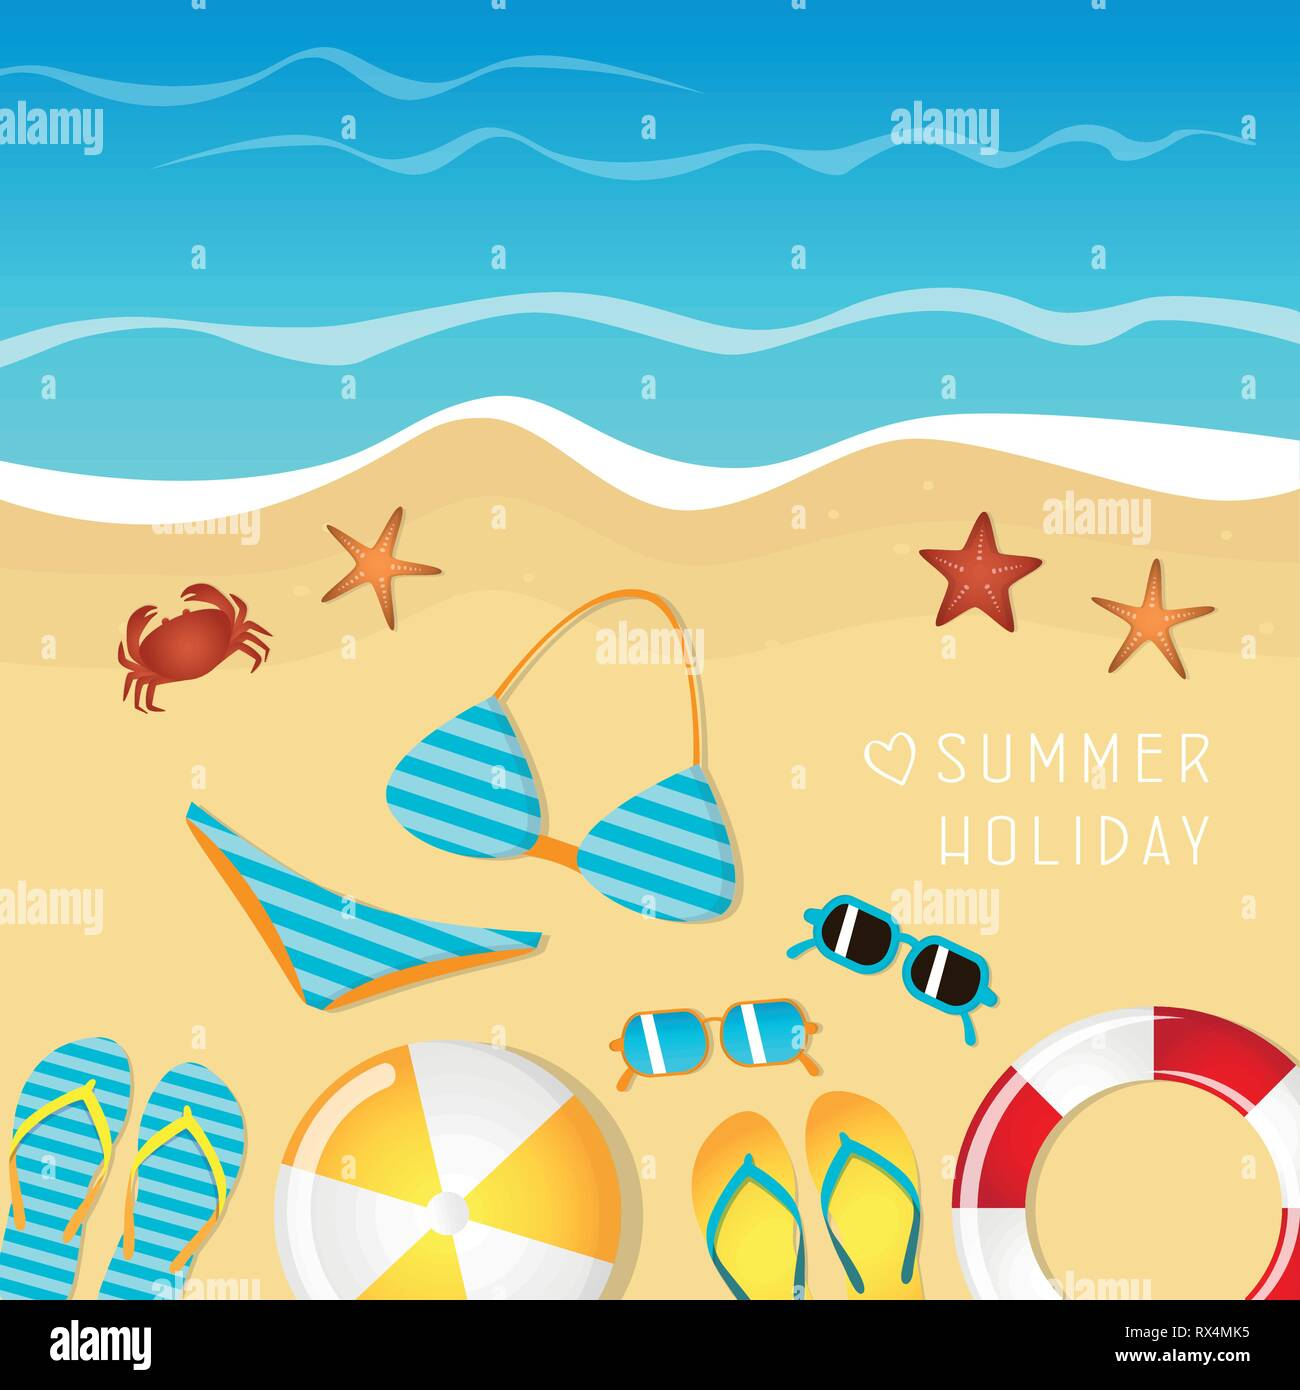 different beach utensils summer holiday background with flip flops sunglasses bikini crab and starfish vector illustration EPS10 - Stock Image